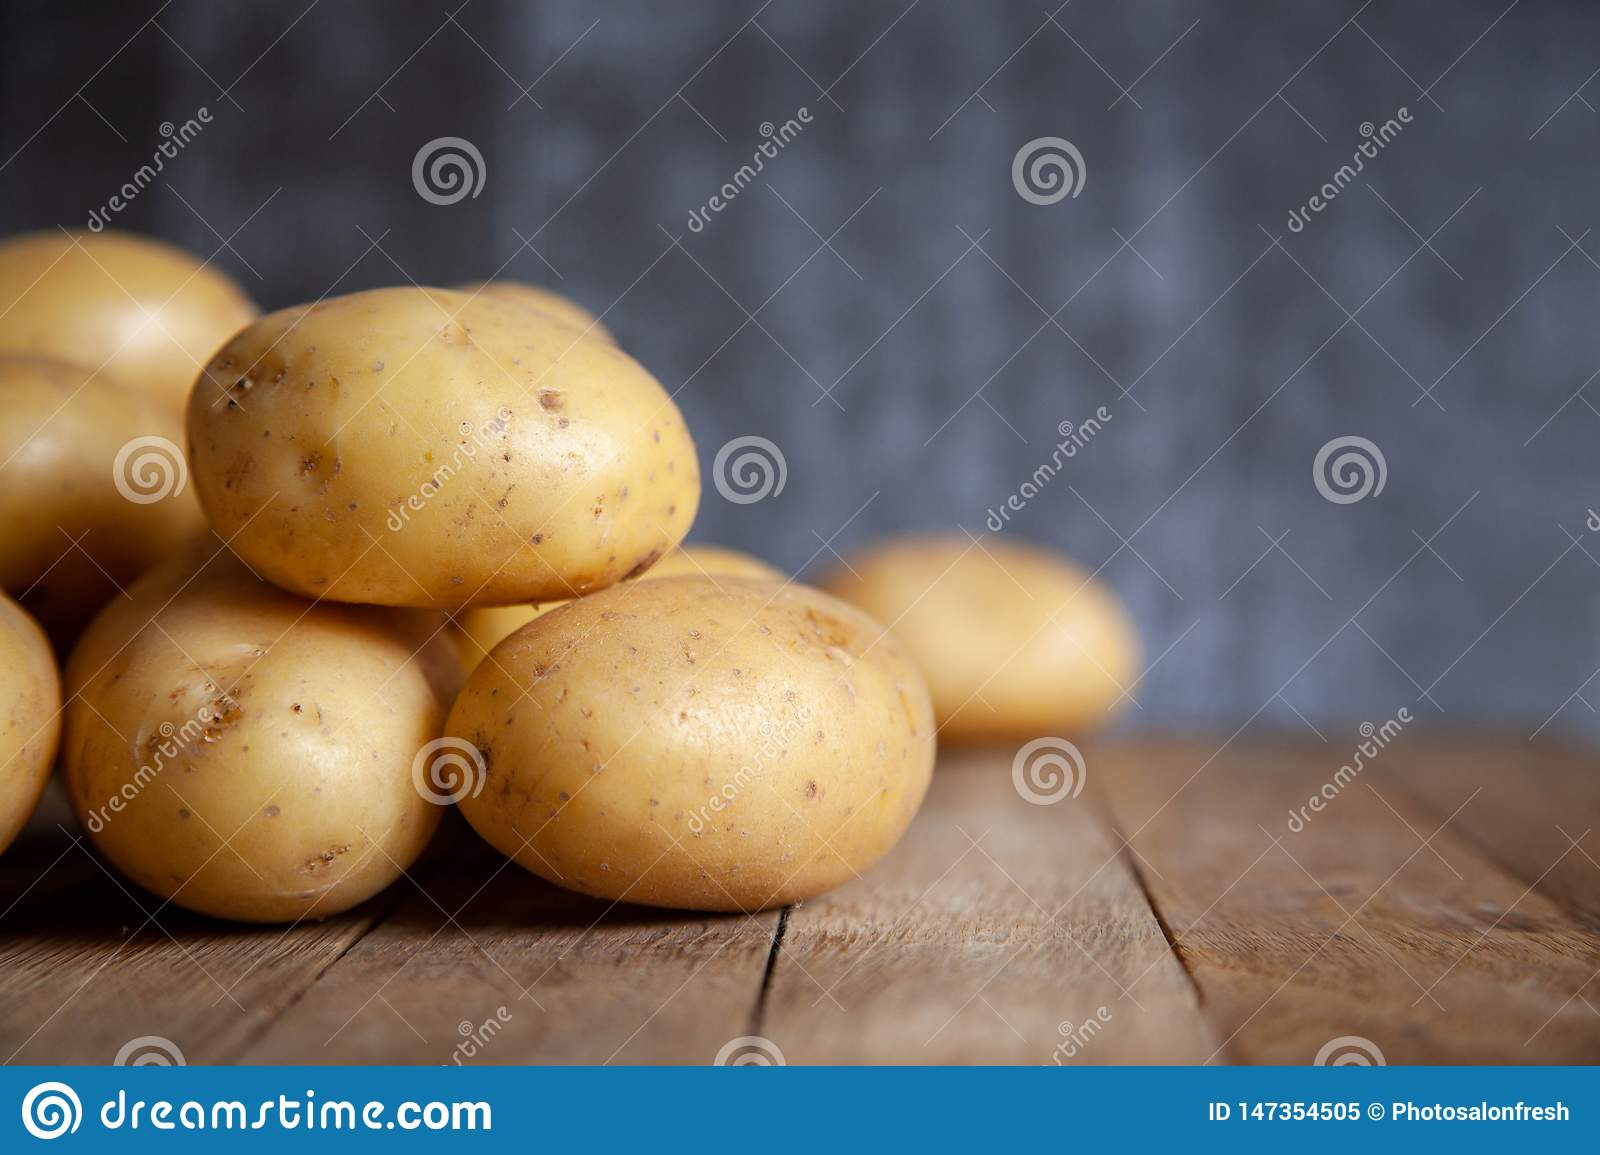 Pile of potatoes on old wooden table.